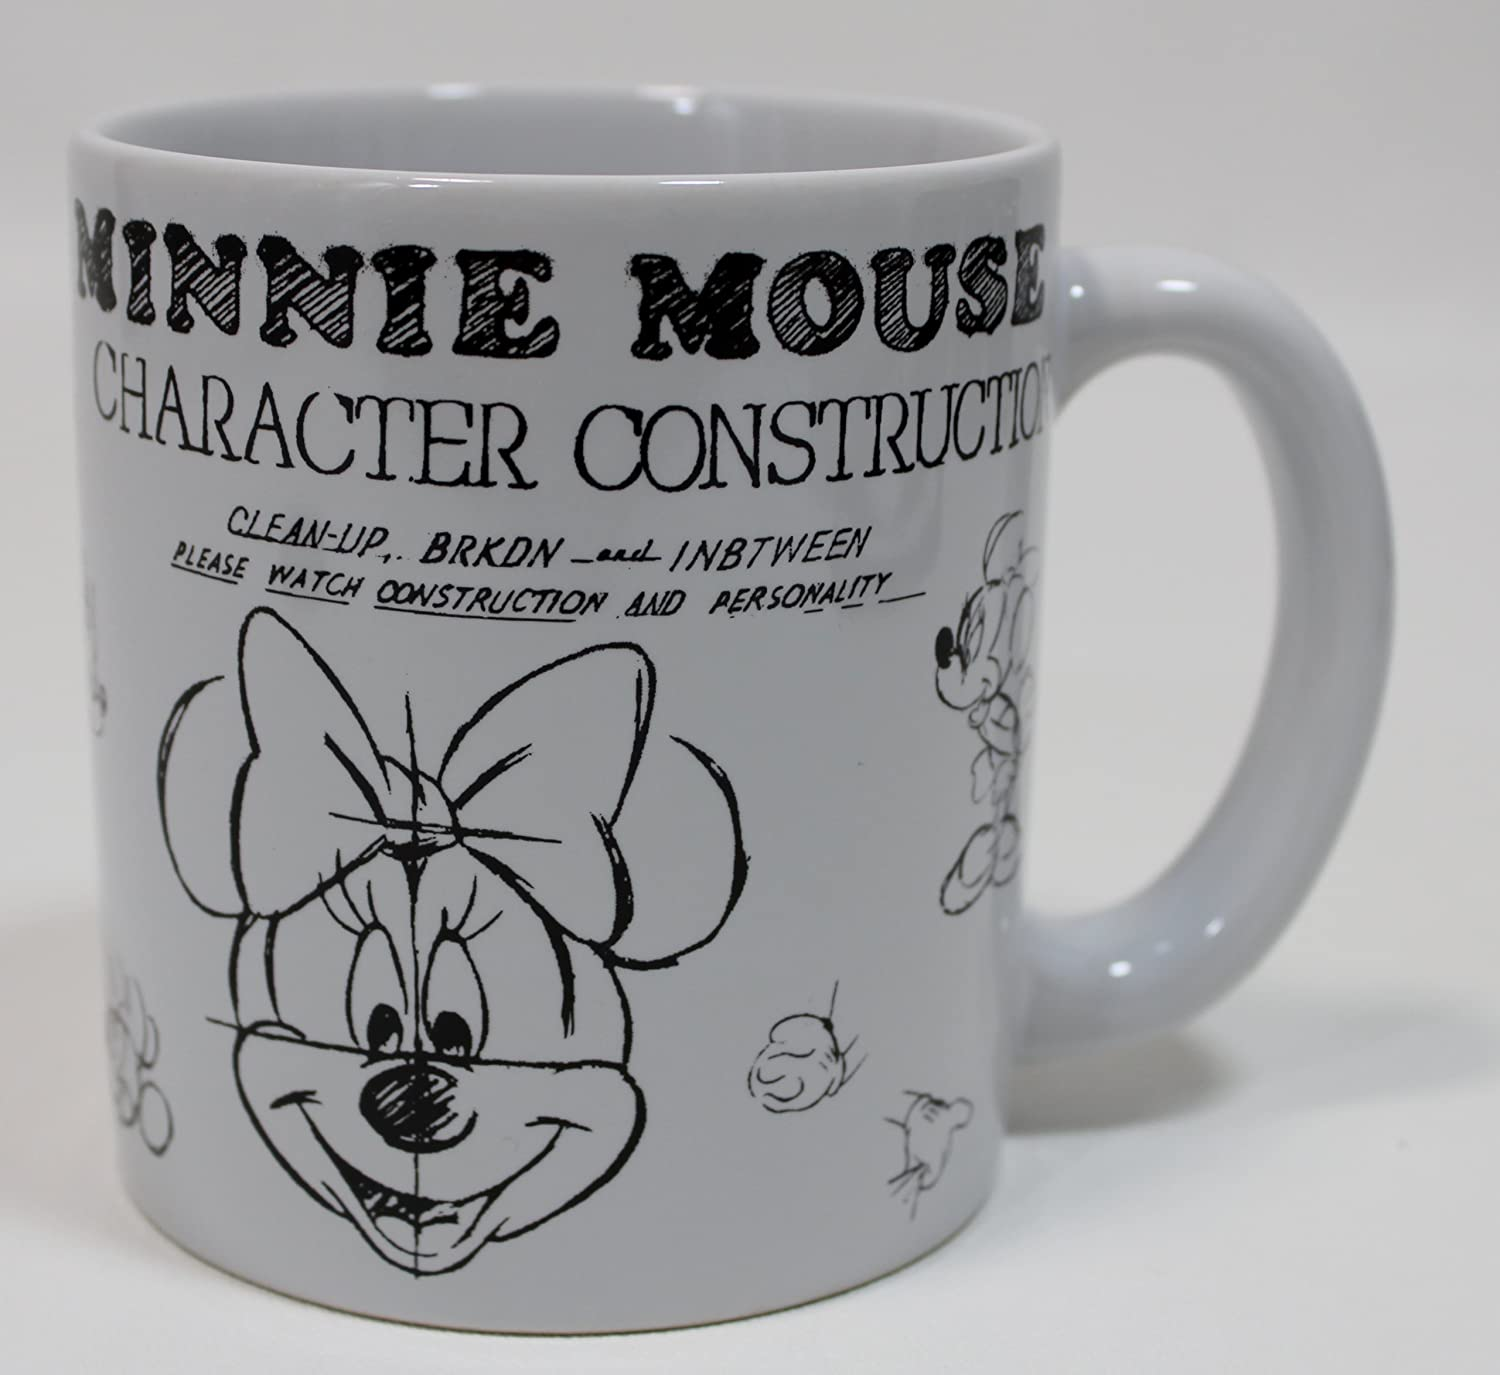 Disney Minnie Mouse Character Construction Coffee//Tea Mug Disney Parks Exclusive /& Limited Availability